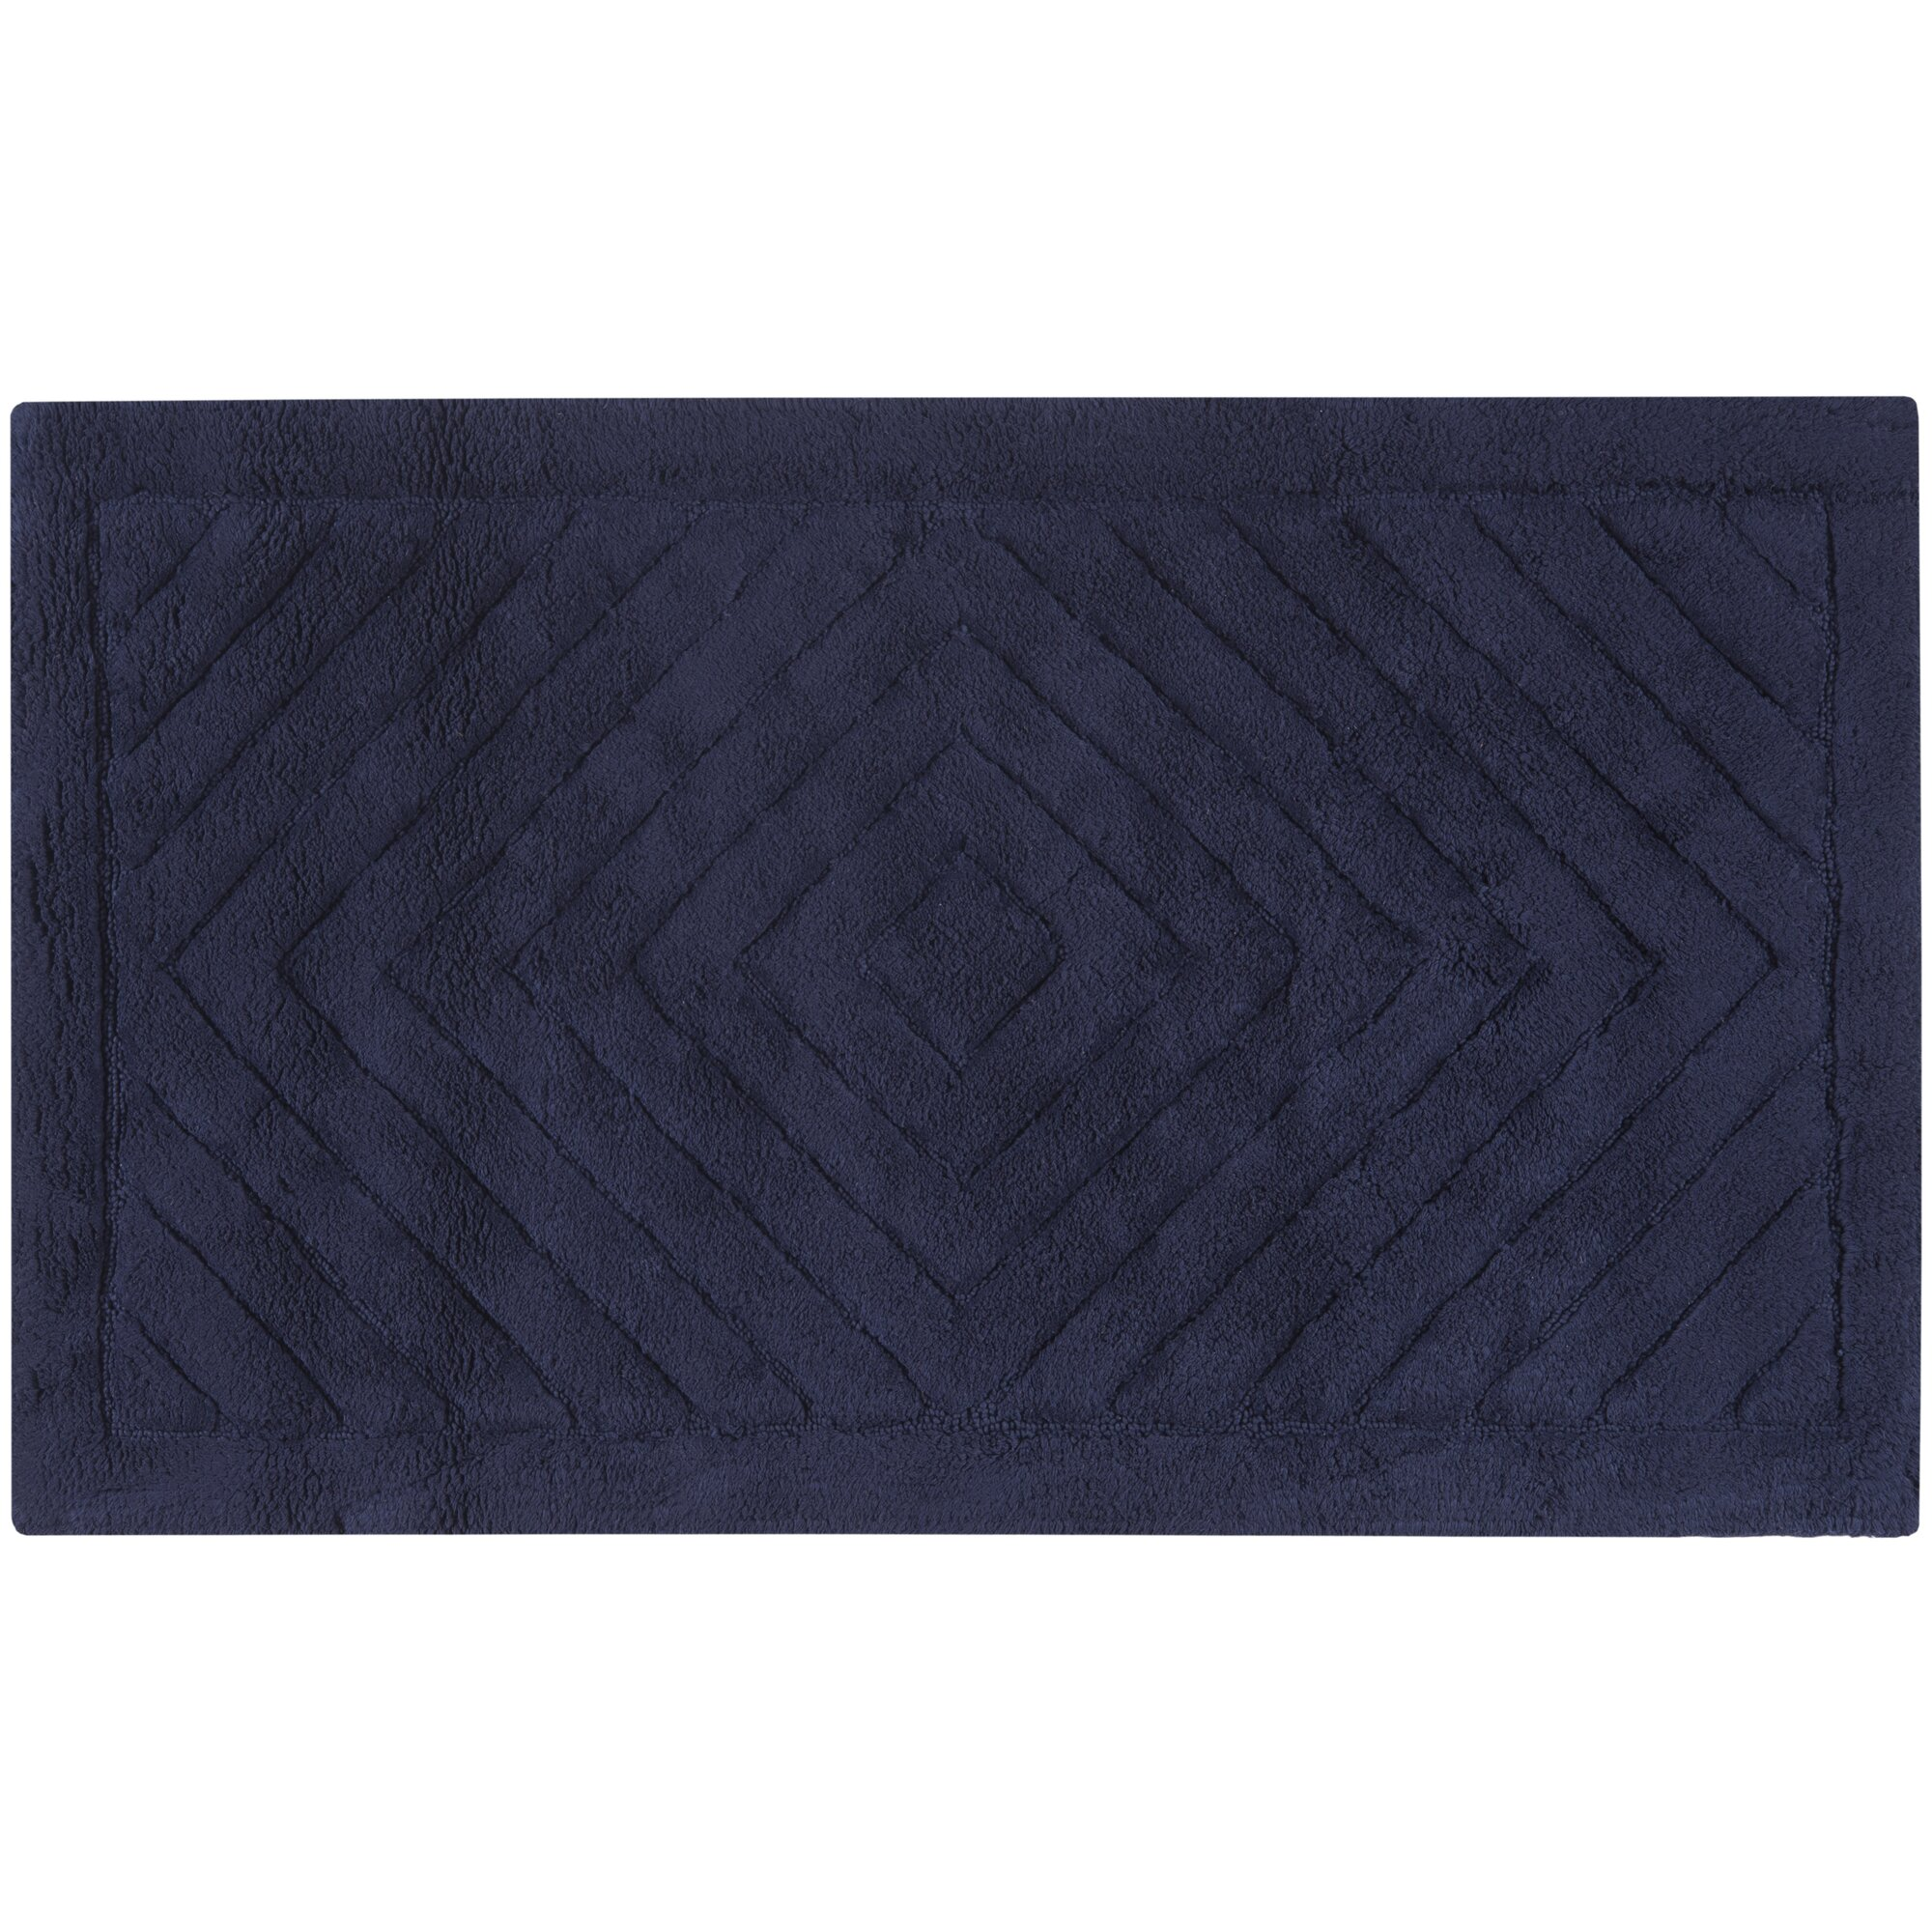 Safavieh Plush Deluxe Master Bath Mat Reviews Wayfair